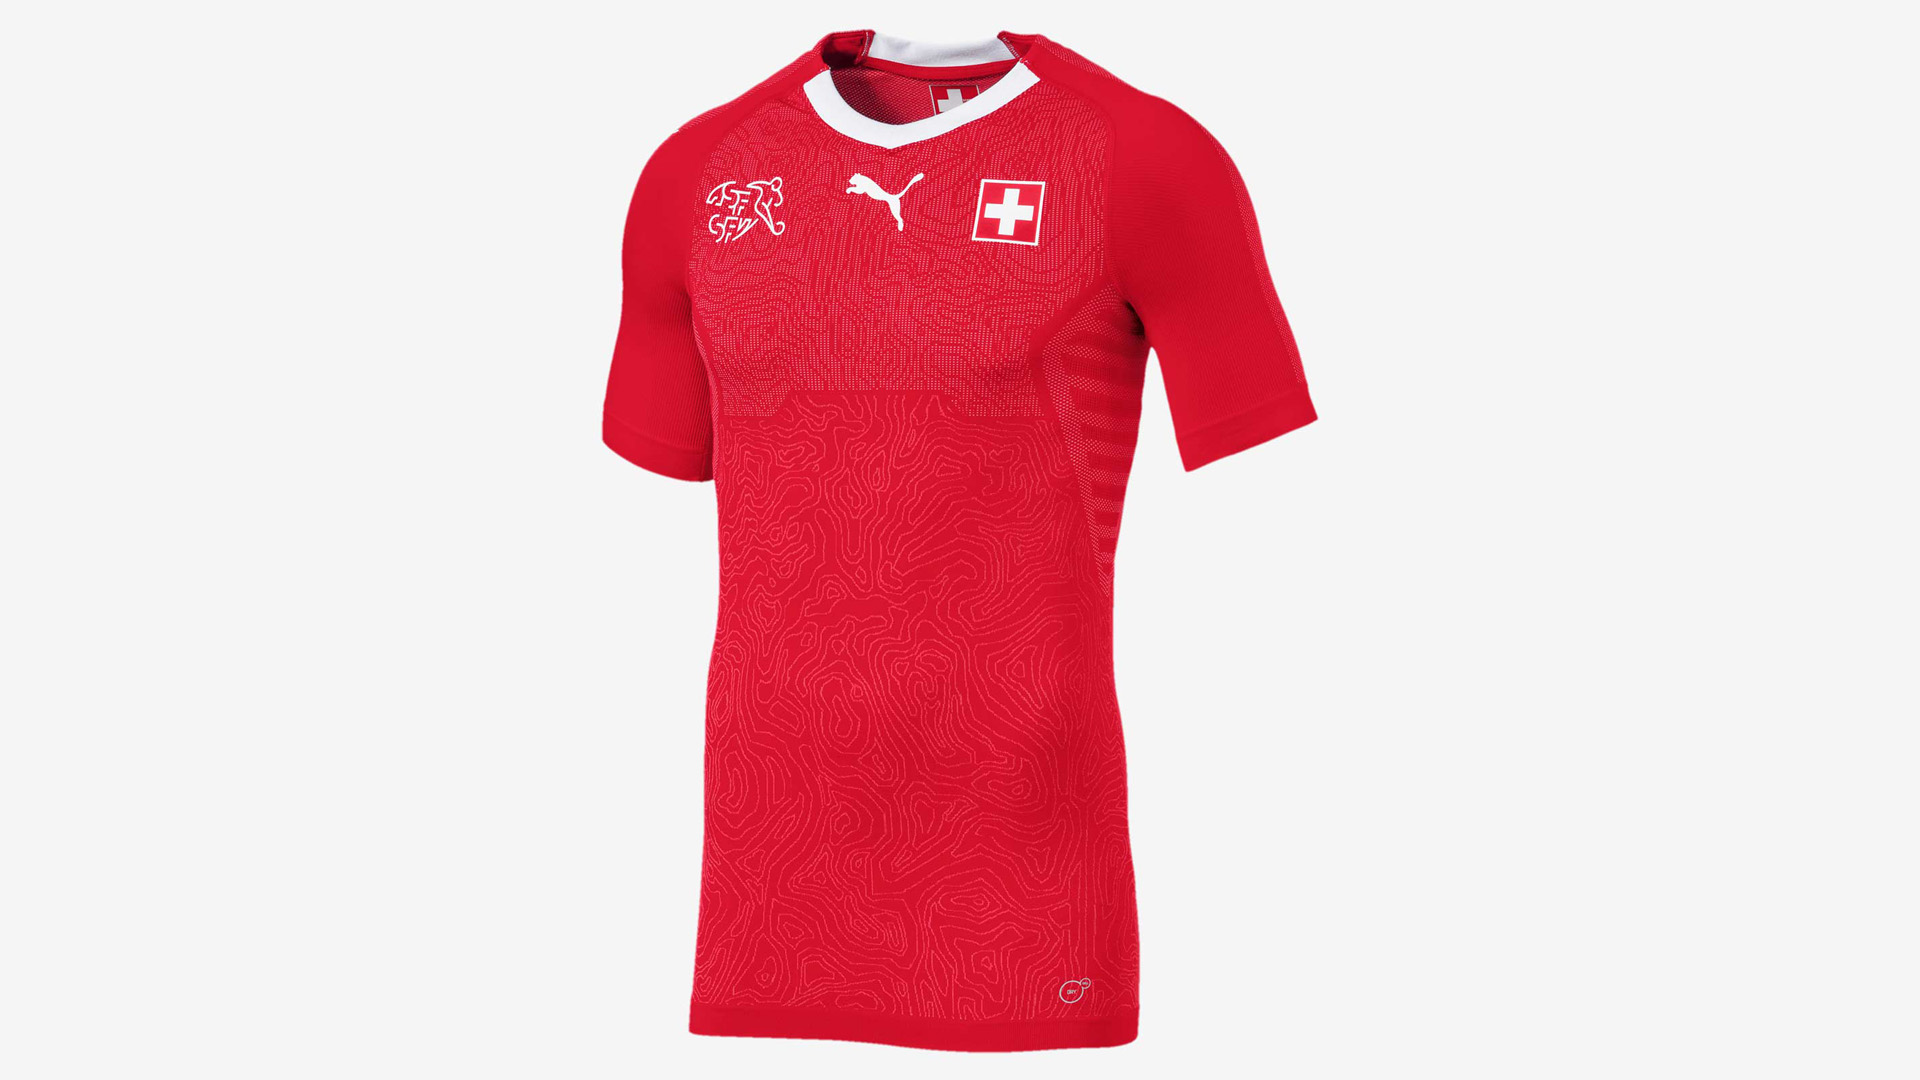 Suiza Camiseta Titular Switzerland Home Kit 2018 ed4379f0e4f